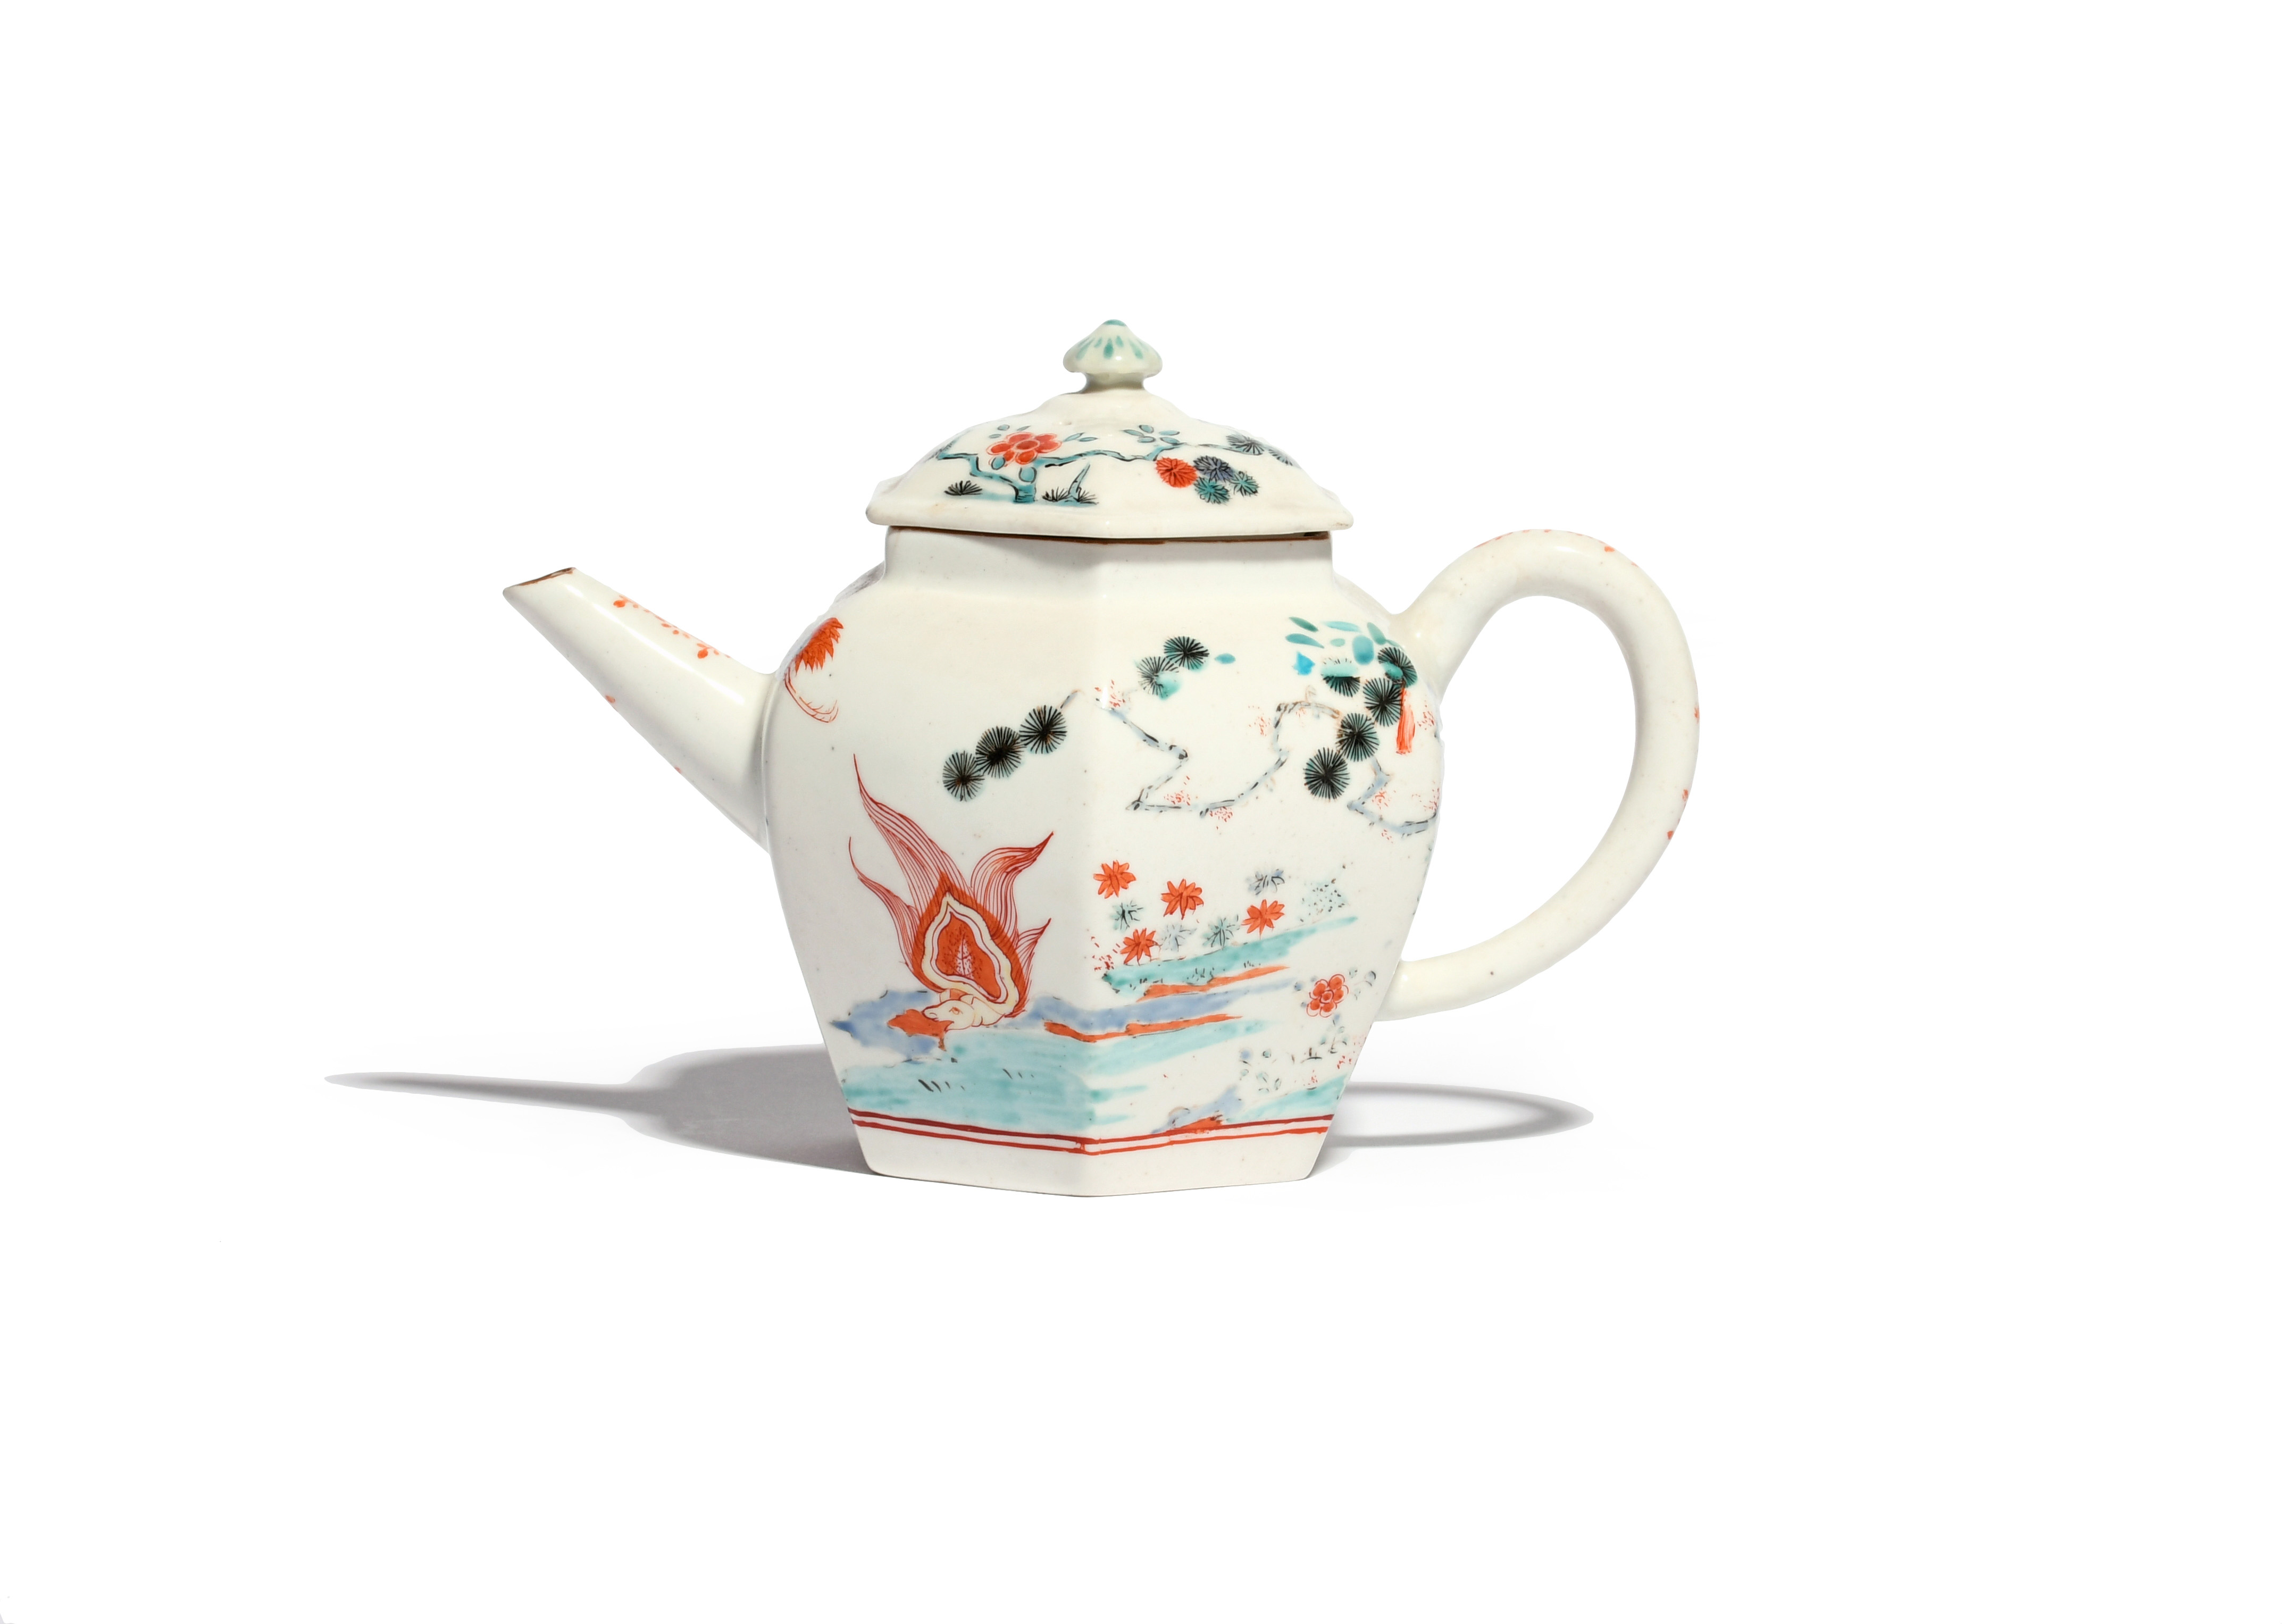 A rare and early Chelsea hexagonal teapot and cover c.1750-52, painted to one side with the